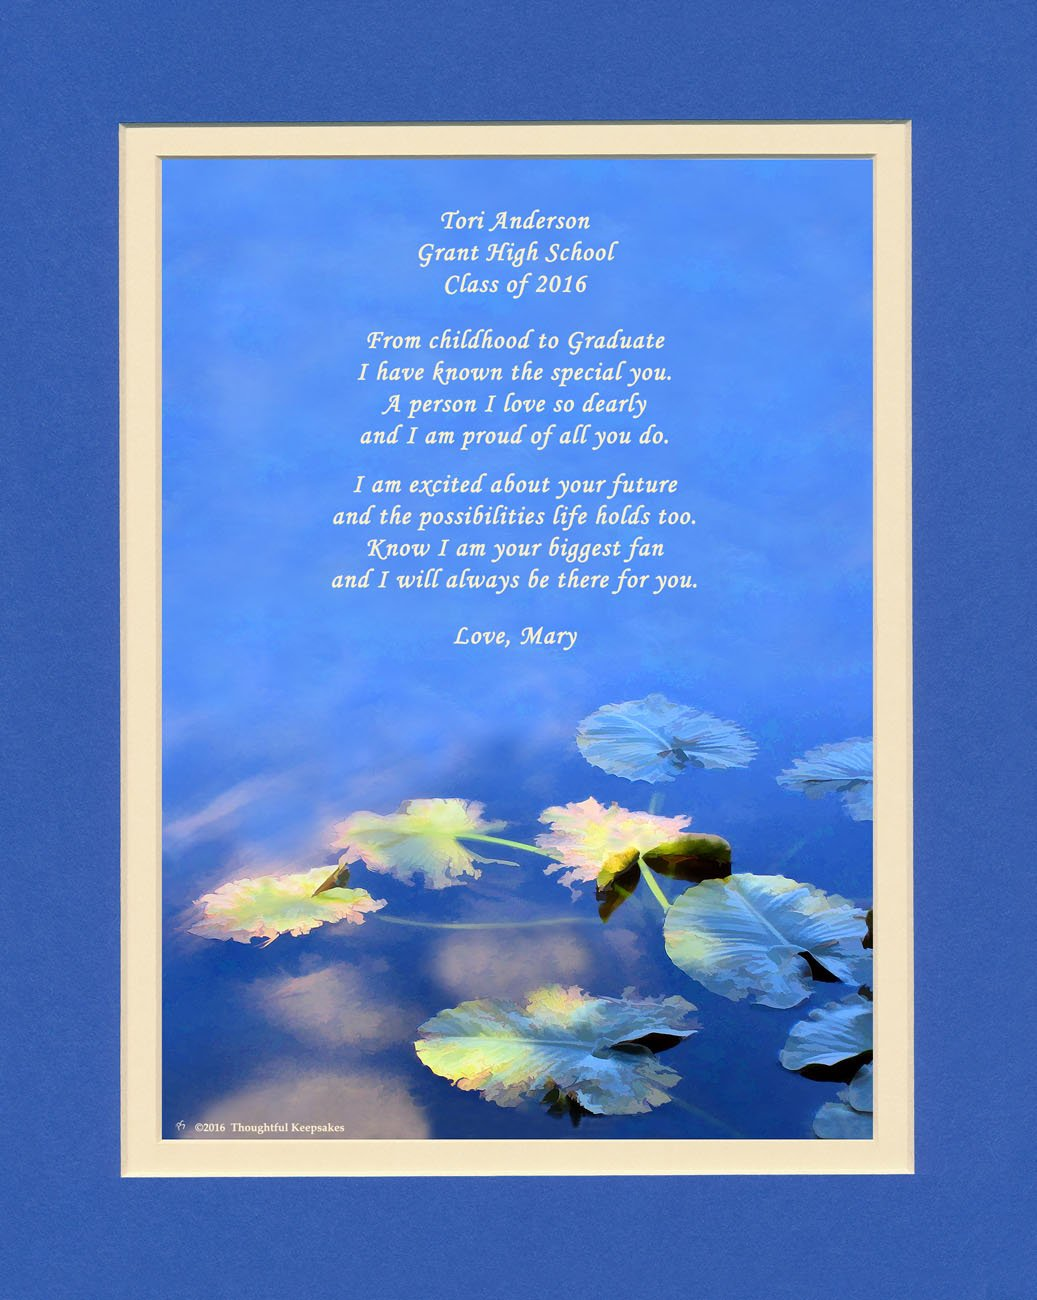 Personalized Gift for Graduation, Water Lily Leaves Photo with ''From Childhood to Graduate'' Poem, 8x10 Double Matted. A Special Graduation Gift for Graduate